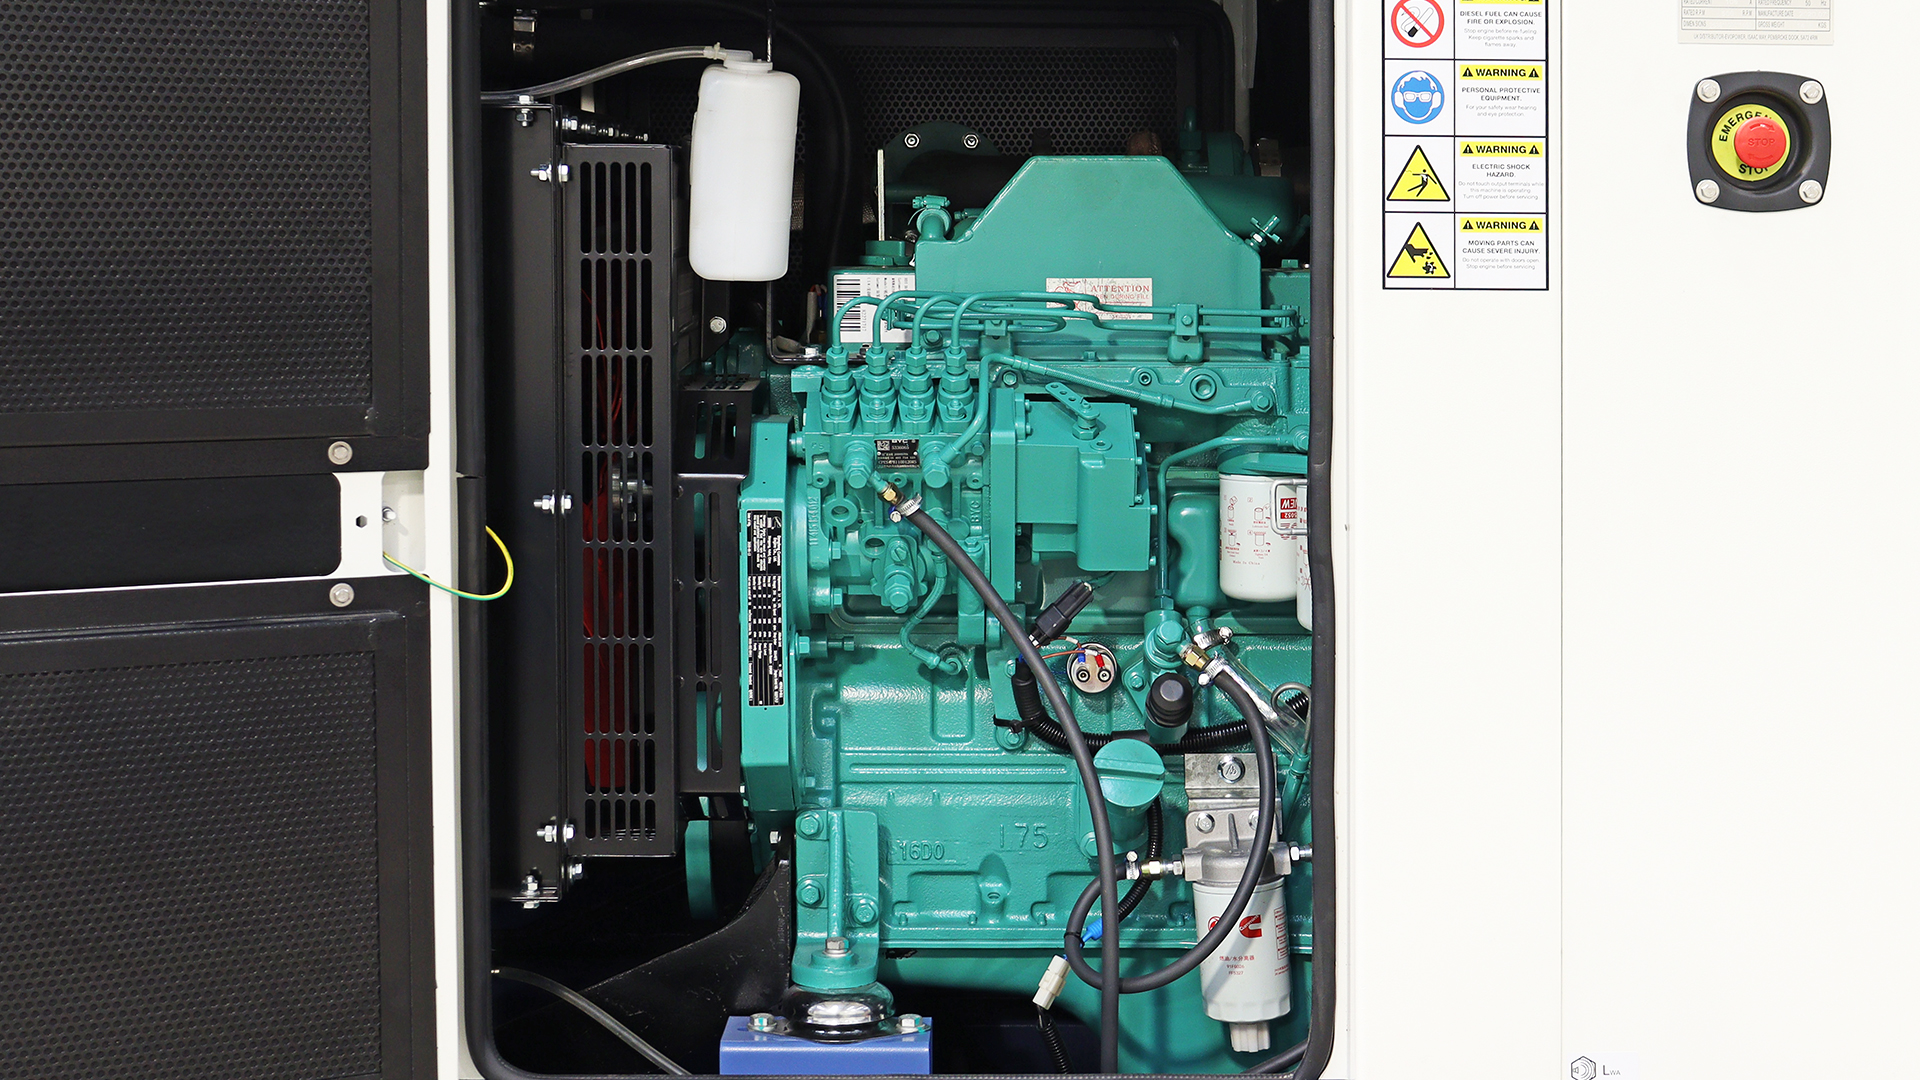 Cummins powered generator showing the 3.9L engine